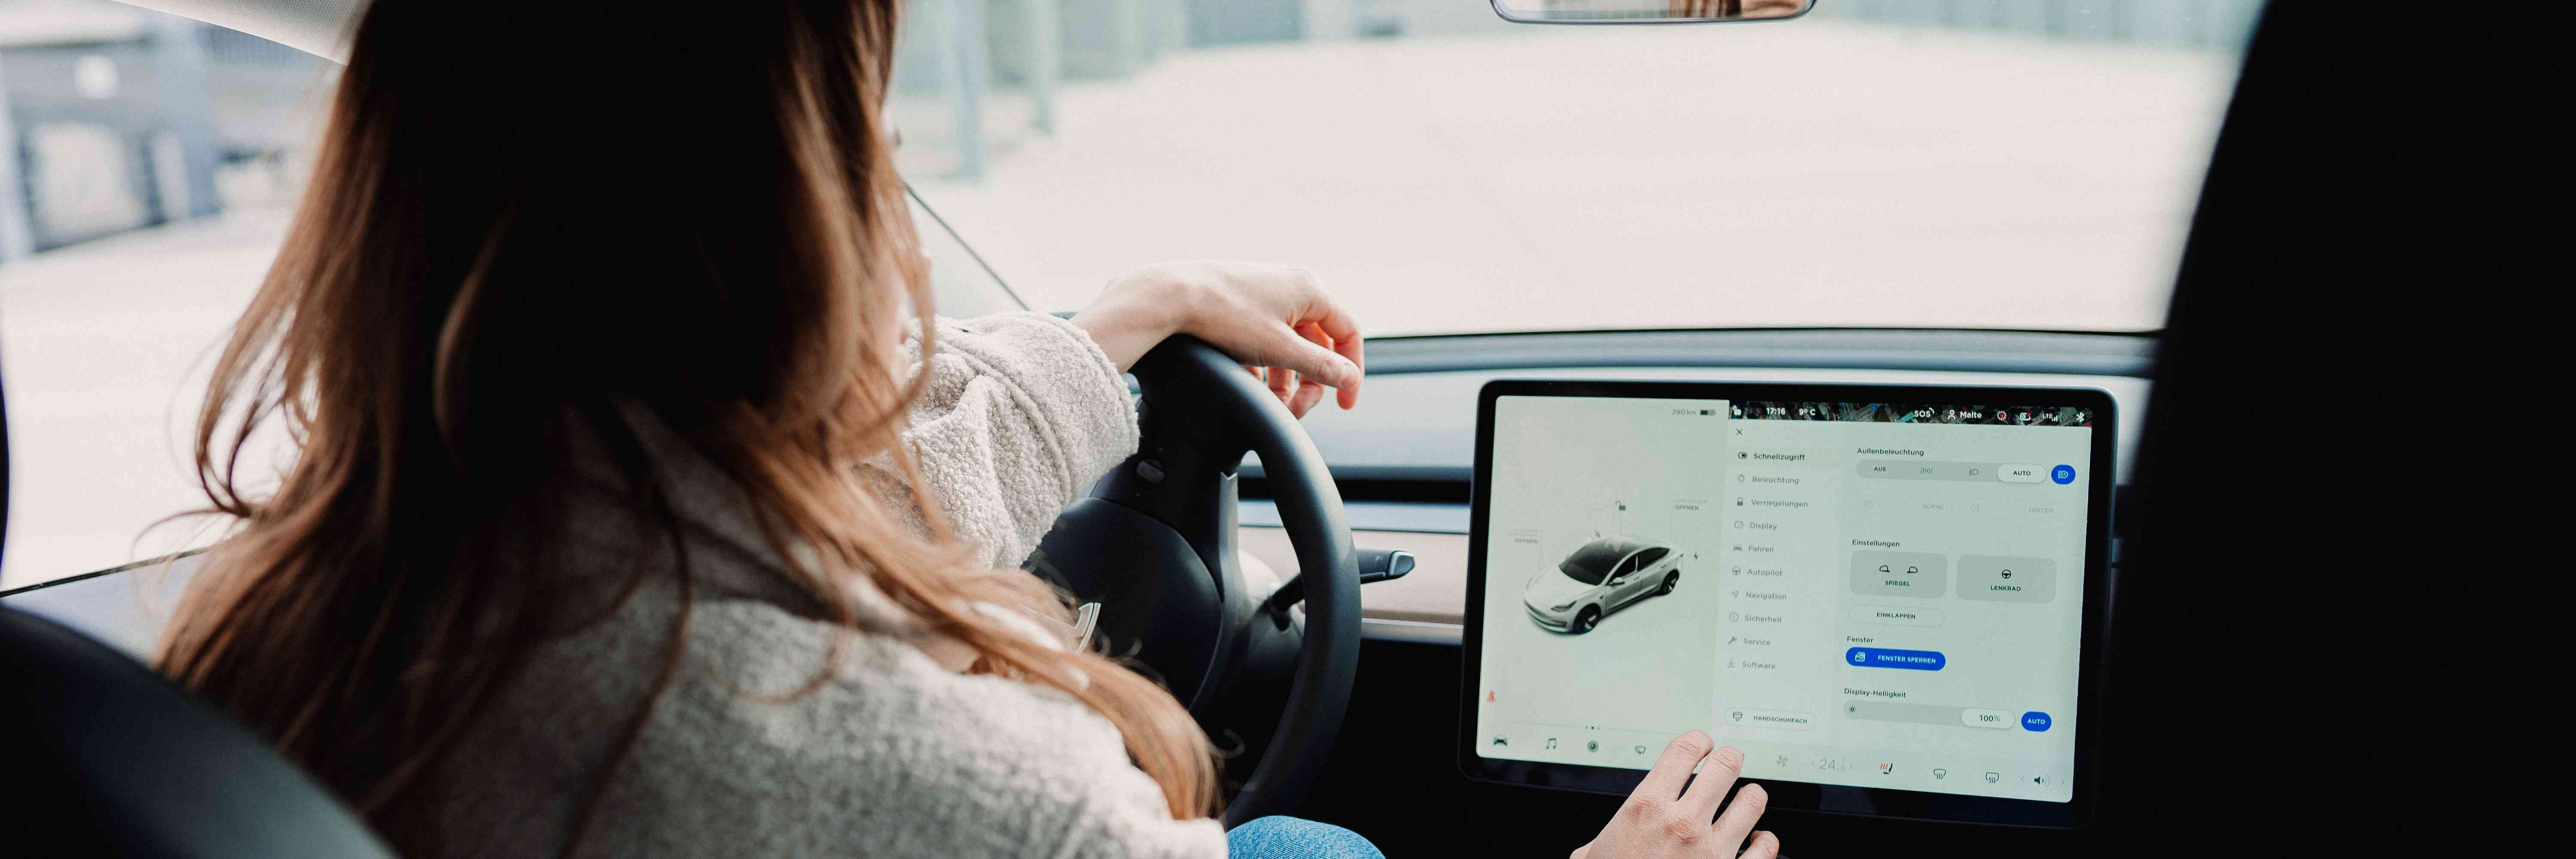 Woman looking at a display unit inside an electric vehicle